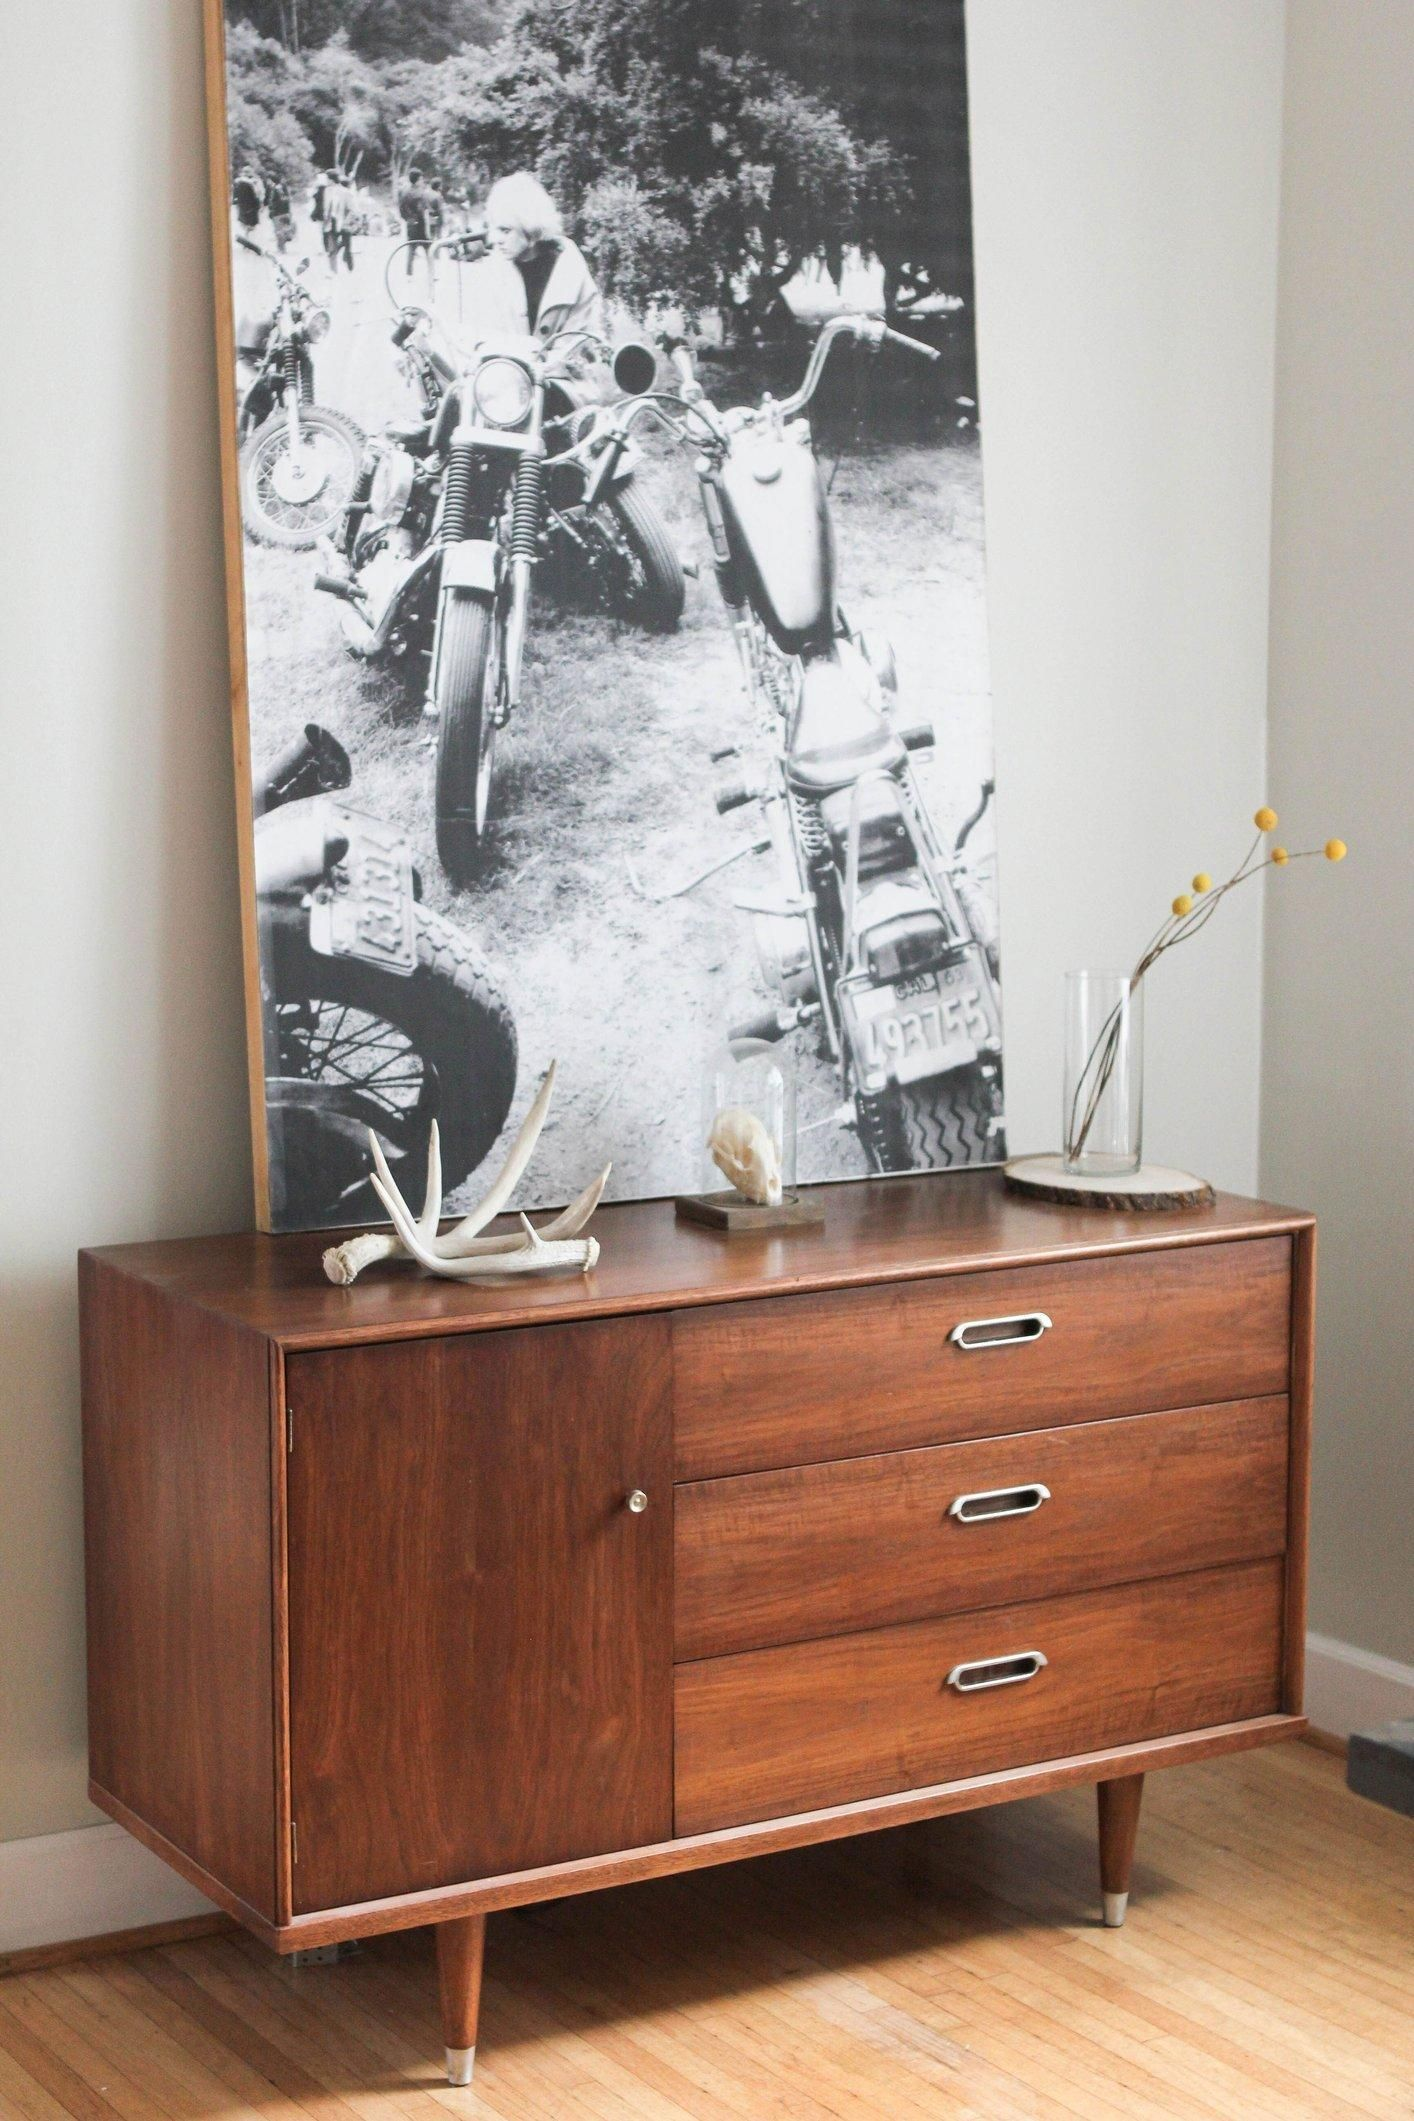 How To Strip And Refinish Wood Furniture Furniture Doctor